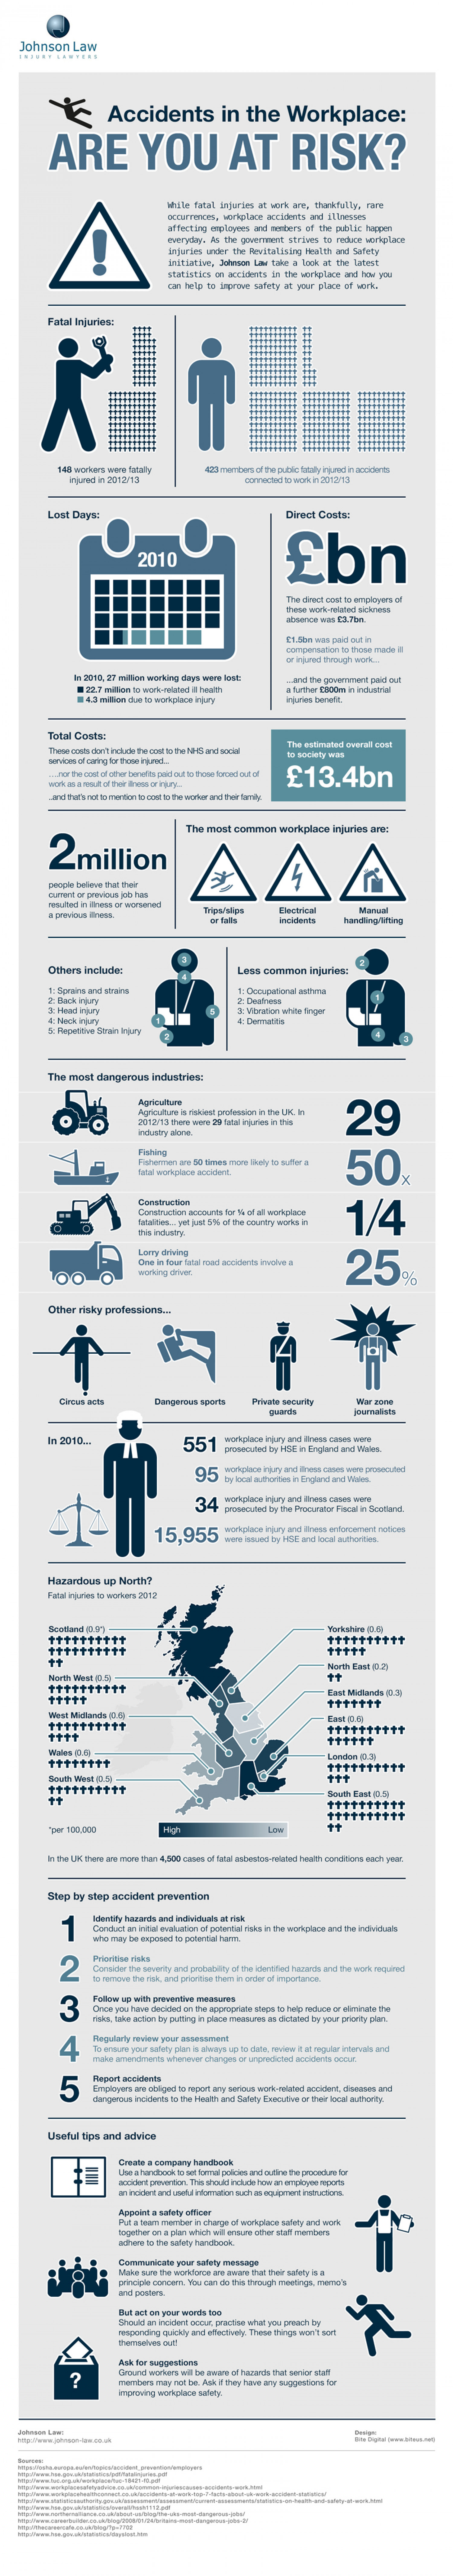 Accidents in the Workplace: Are You At Risk? Infographic